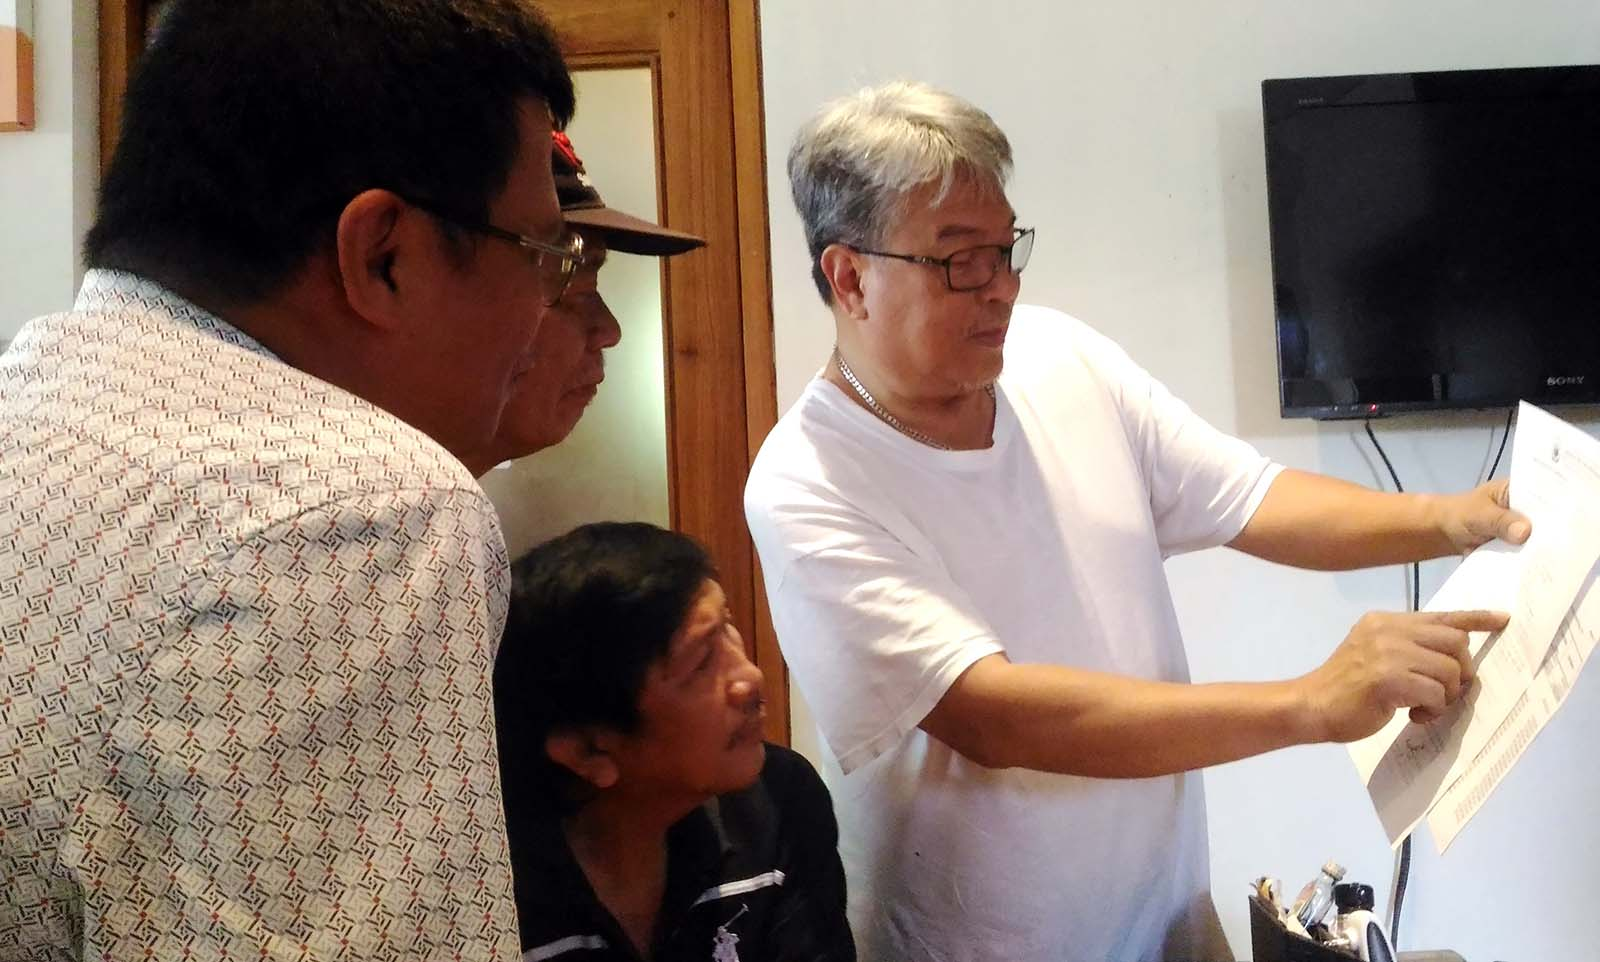 TRANSPARENCY. Cong. DV Savellano (right) shows to the media RA 7171 records relevant to his RA 7171 congressional share in one of his interviews with the members of the Ilocos Sur Integrated Press. (photo by Edward B. Antonio)